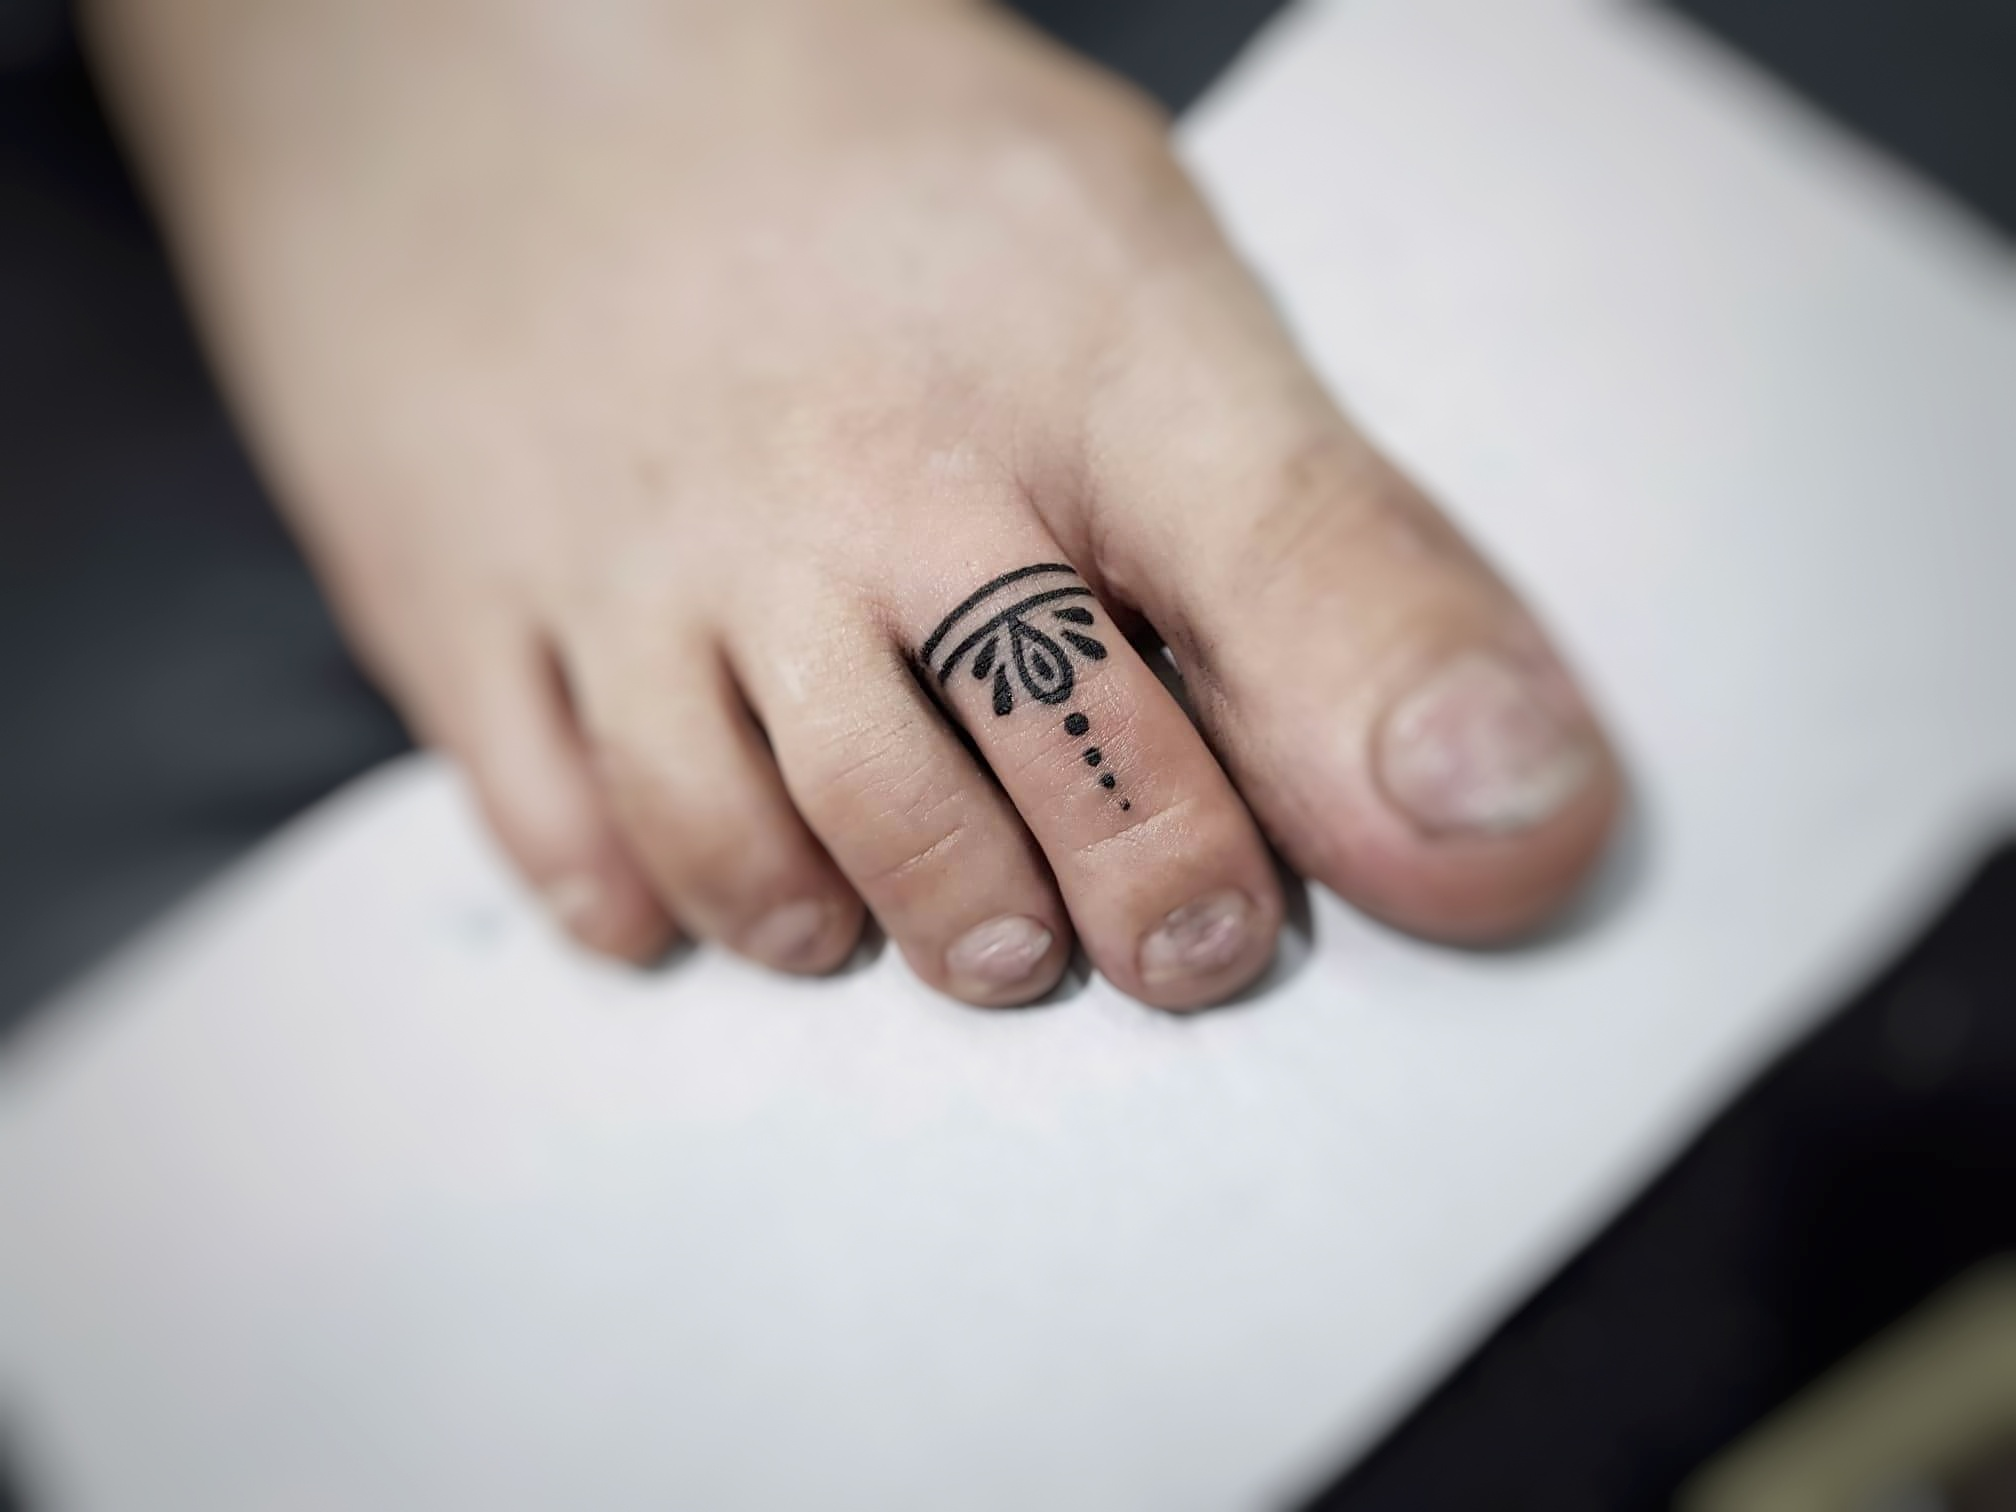 Toe ring tattoo, minimal tattoo by sumina shrestha- best female tattoo artist in nepal